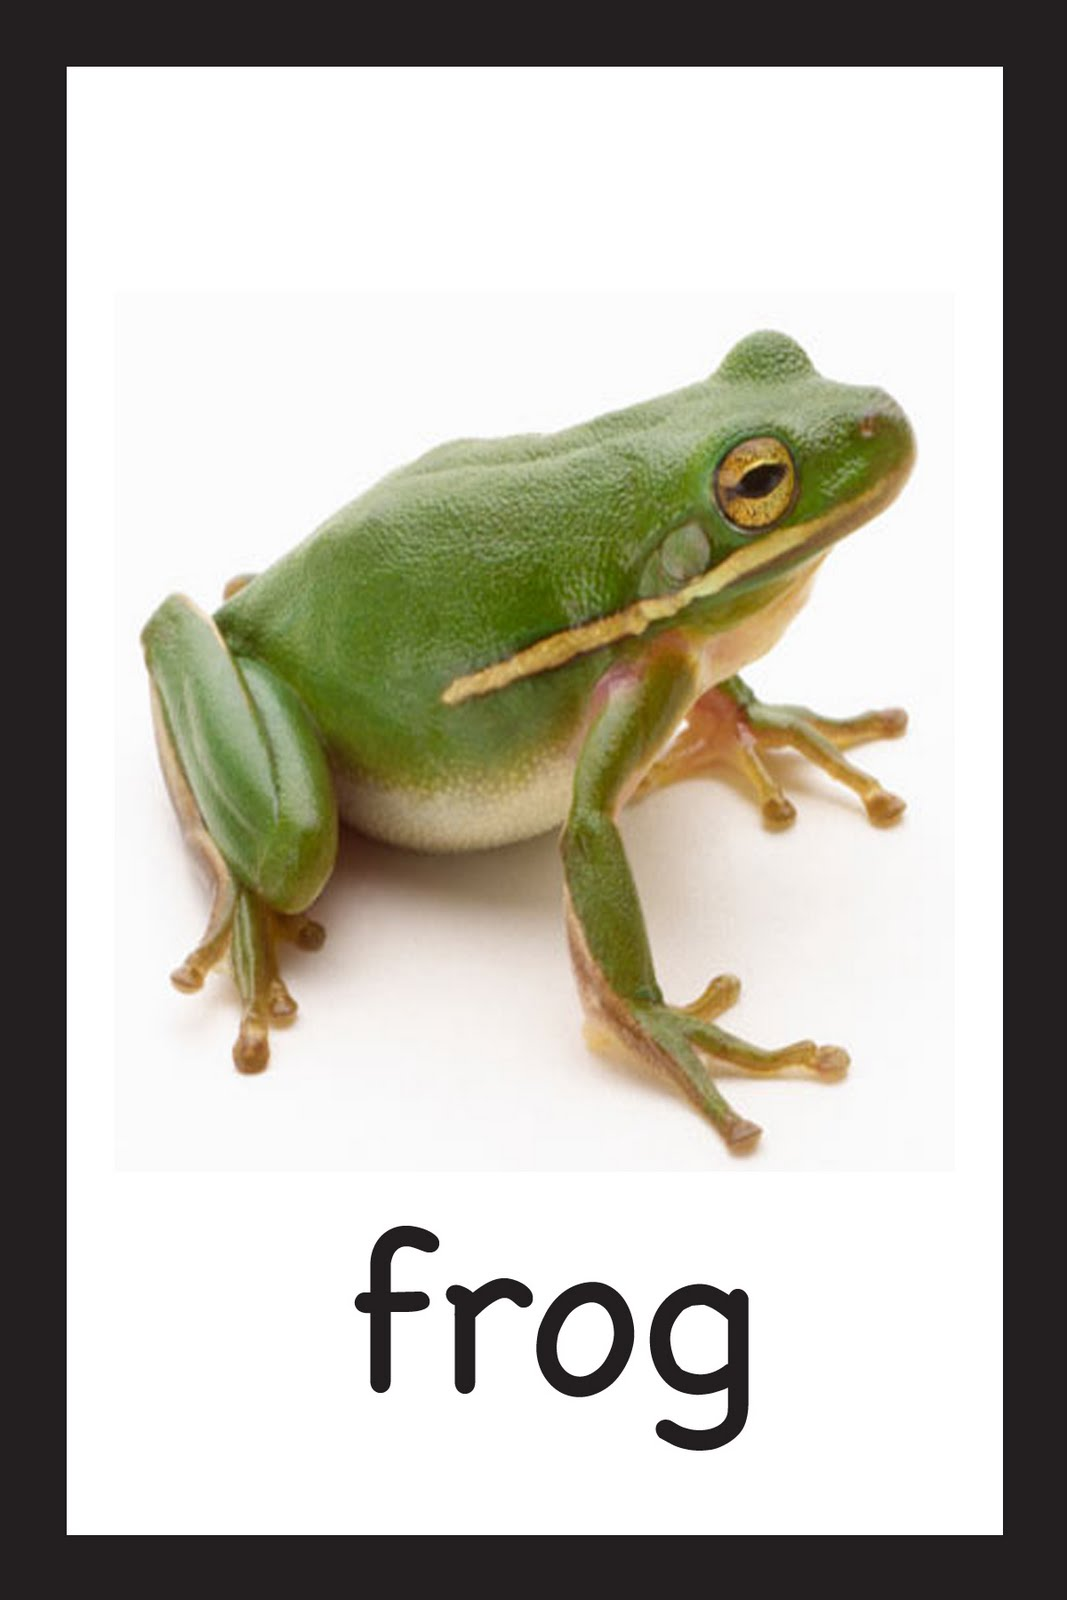 [frog]